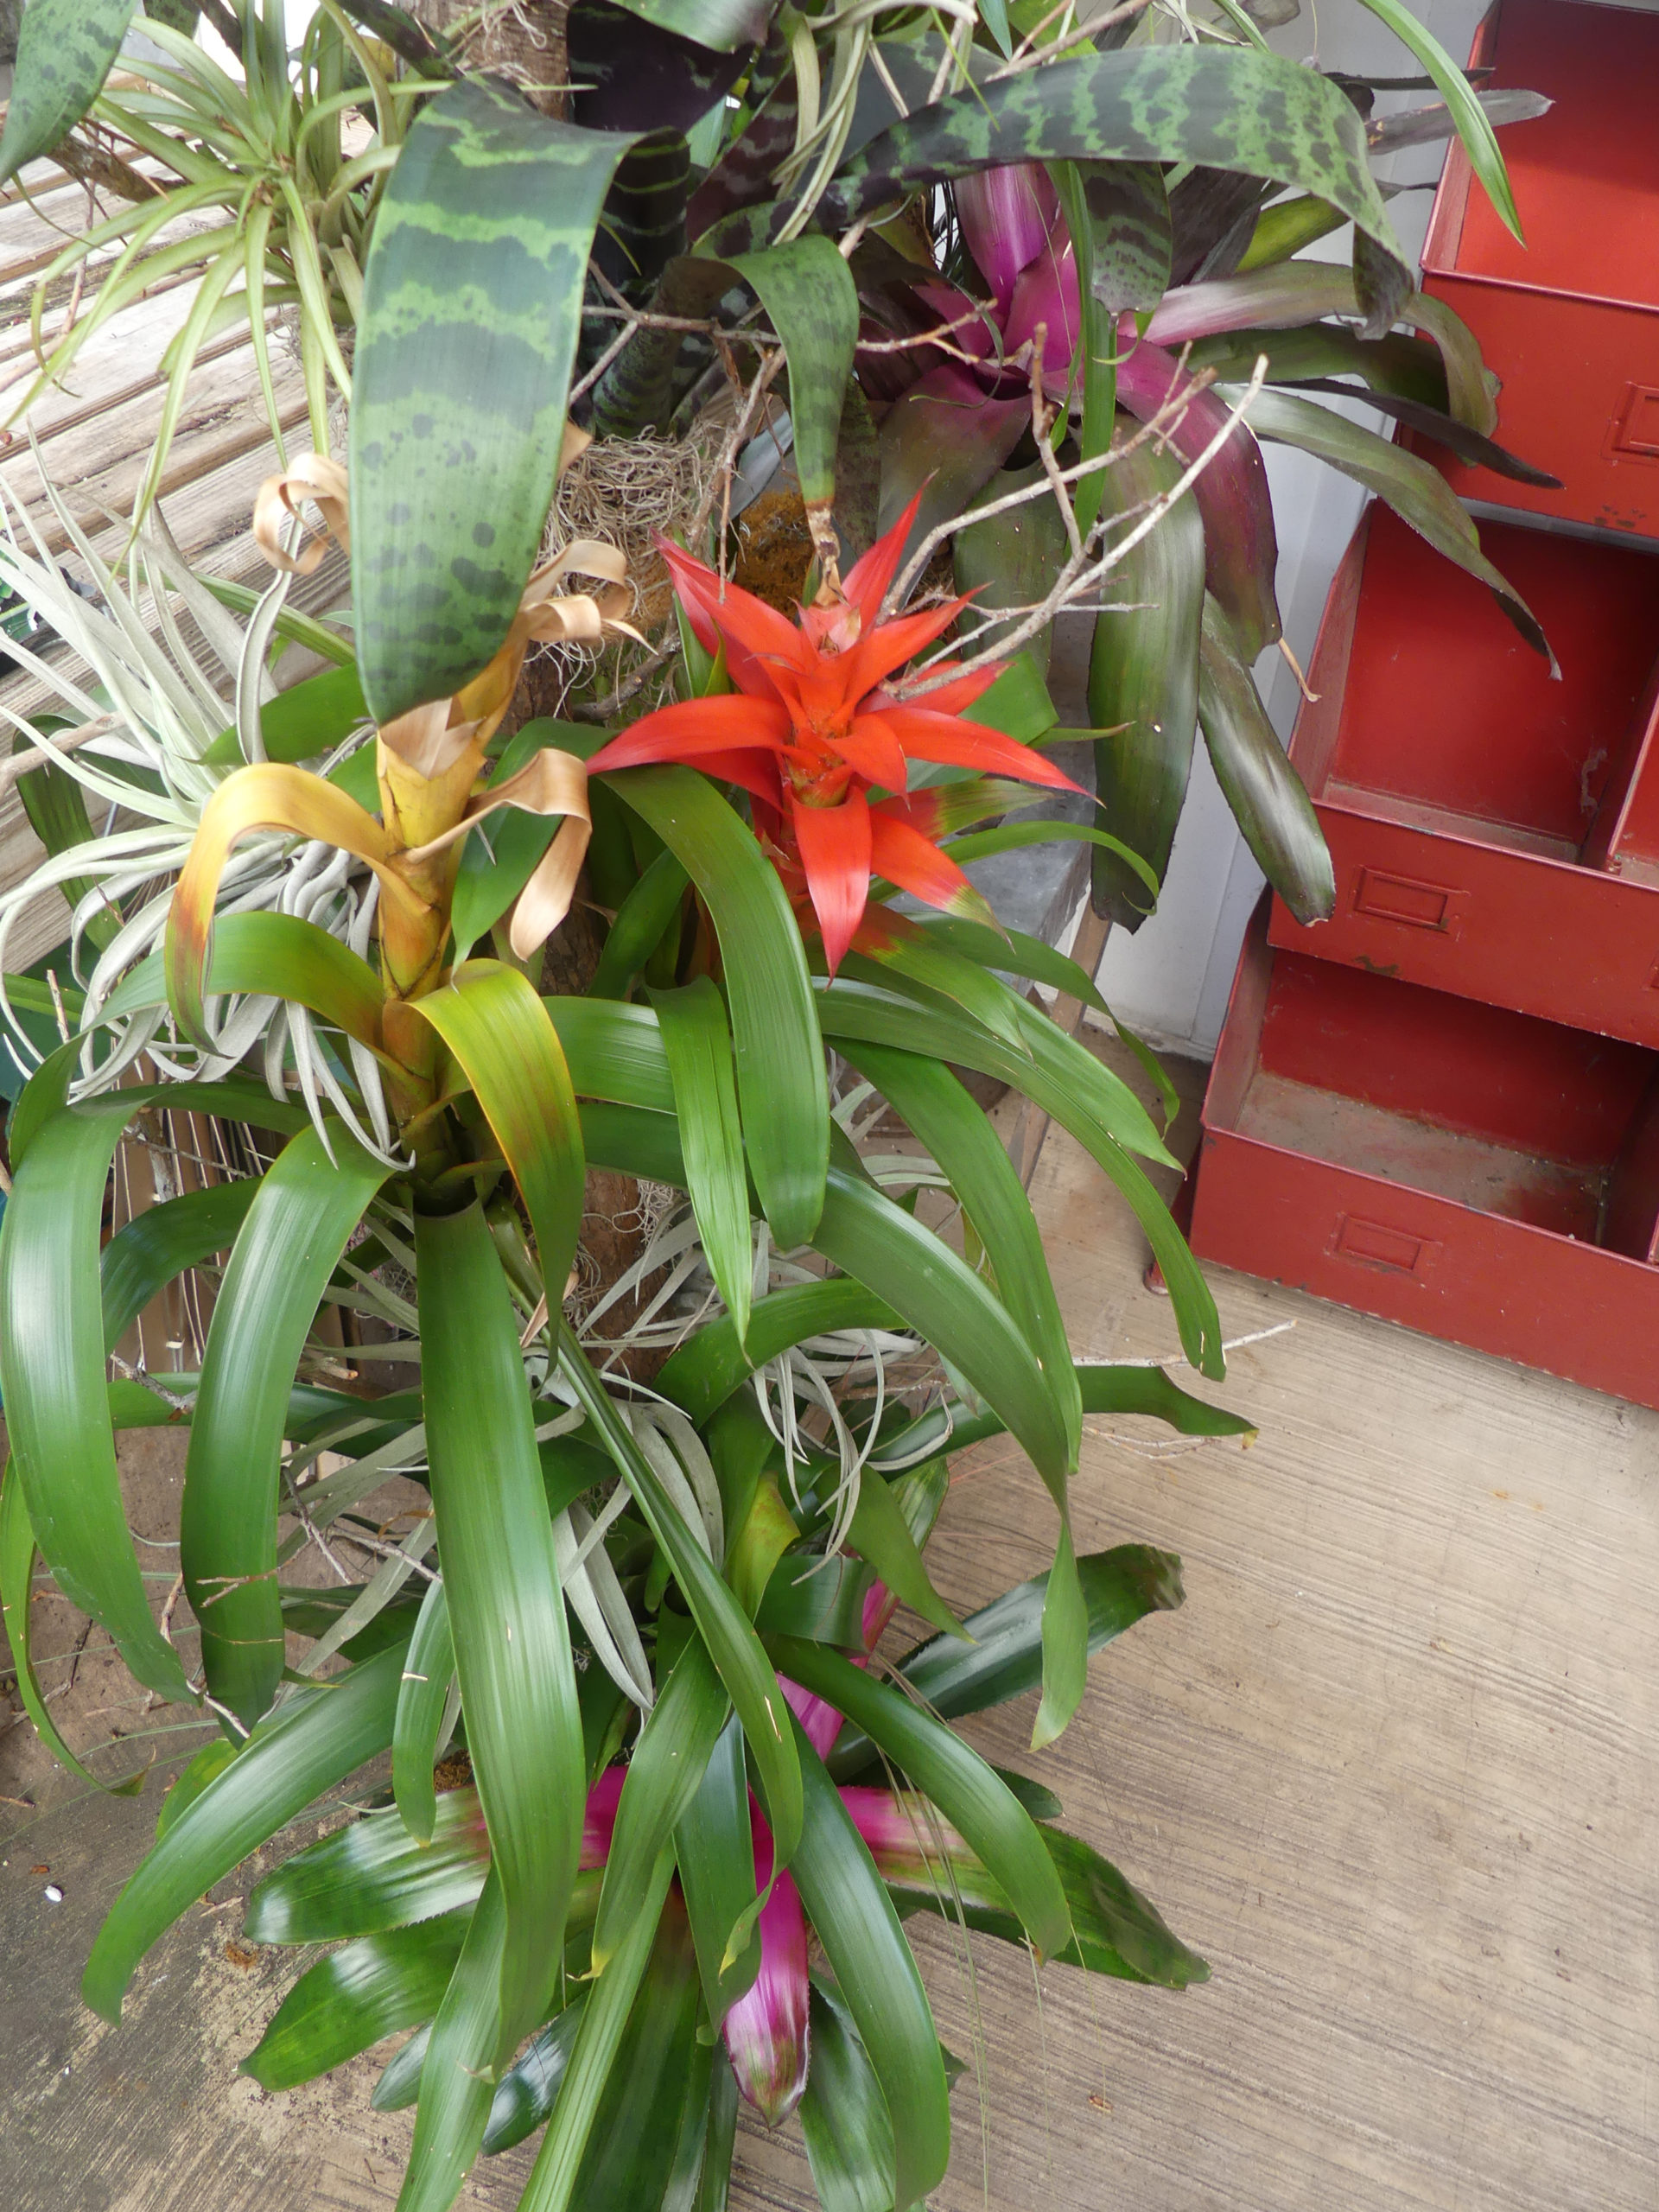 """Bromeliads and """"air plants"""" can have dramatic flowers and require little care other than moderately humid air and water in just the right spot. They look best when massed like these on a wooden totem or post. ANDREW MESSINGER"""